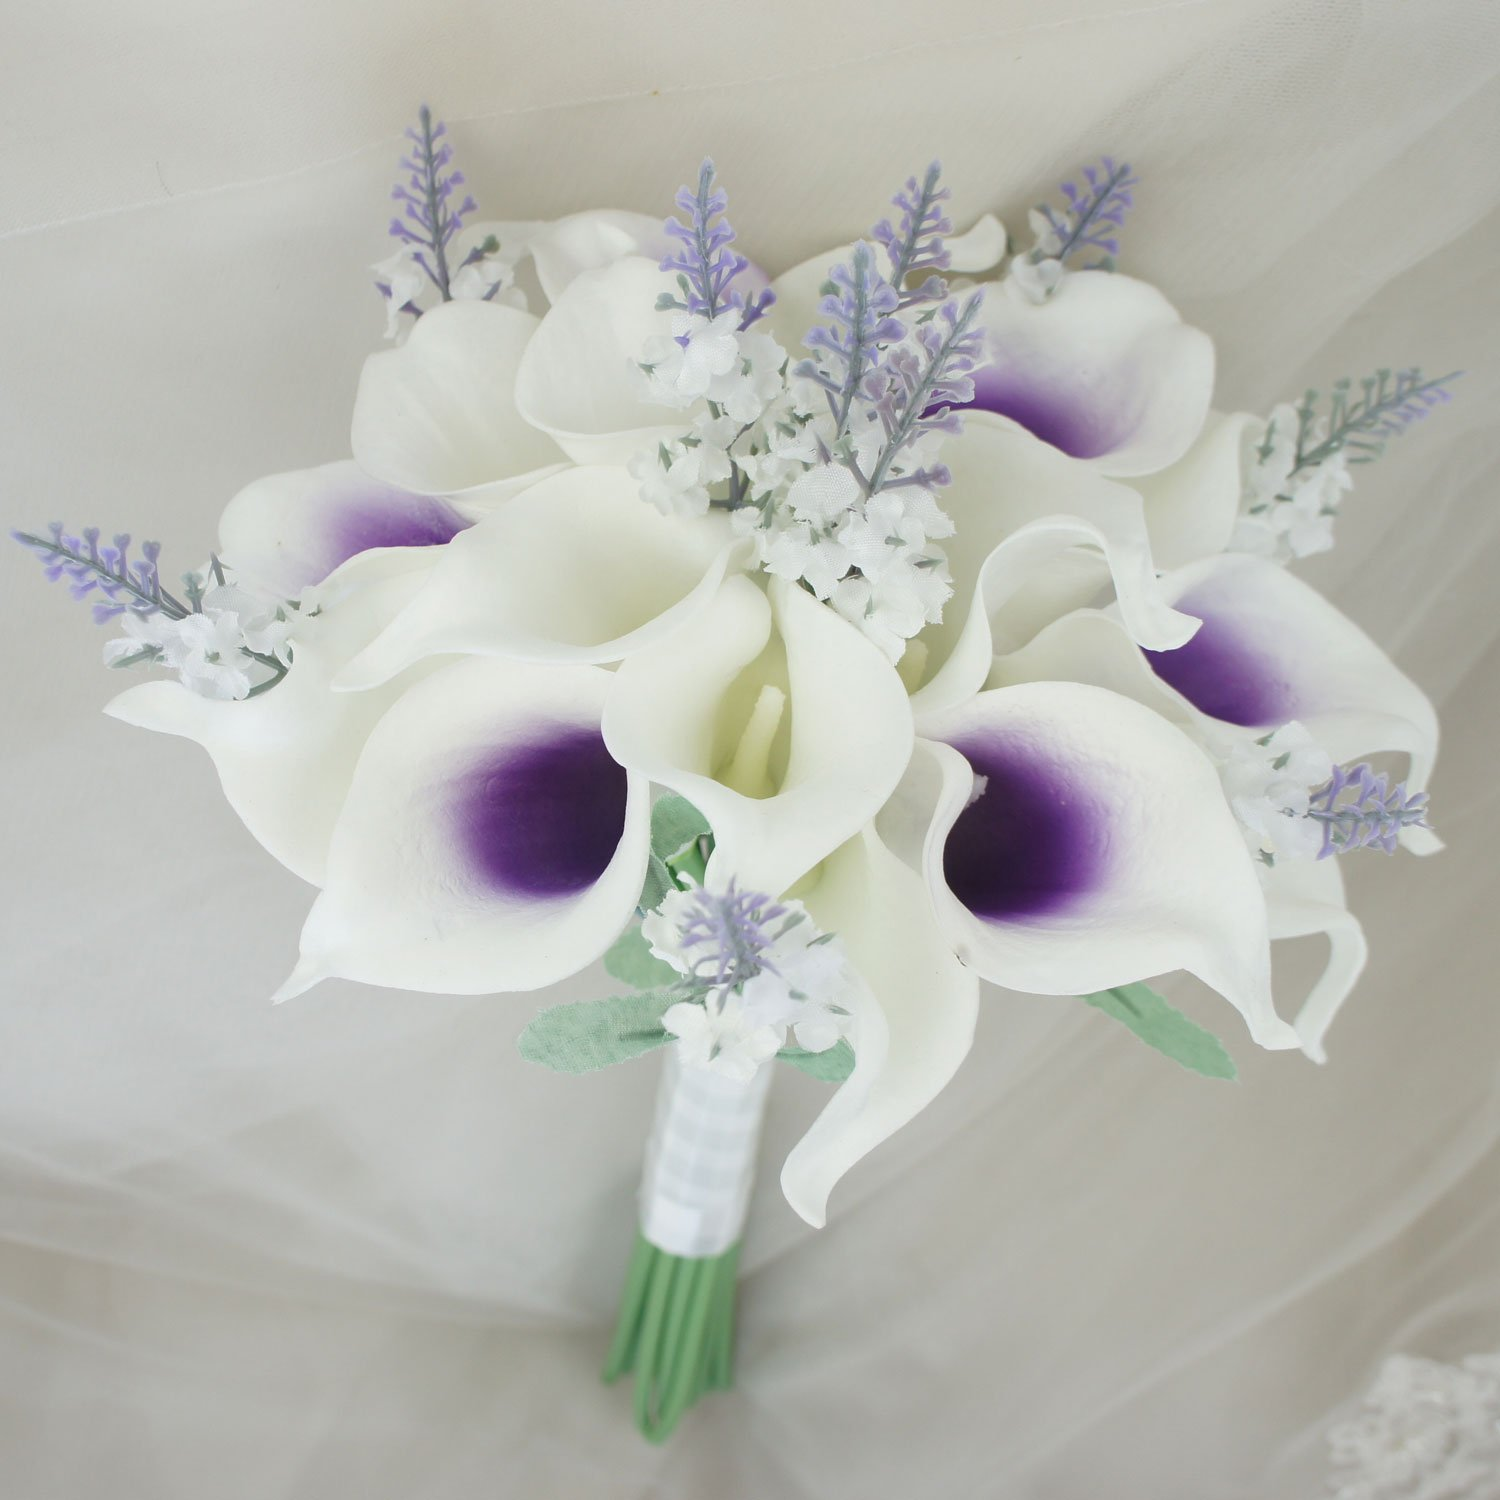 Lily Garden Mini 15'' Artificial Calla Lily 16 Stem Flower Bouquets with Ribbon (Purple Center with Lavender) by Lily Garden